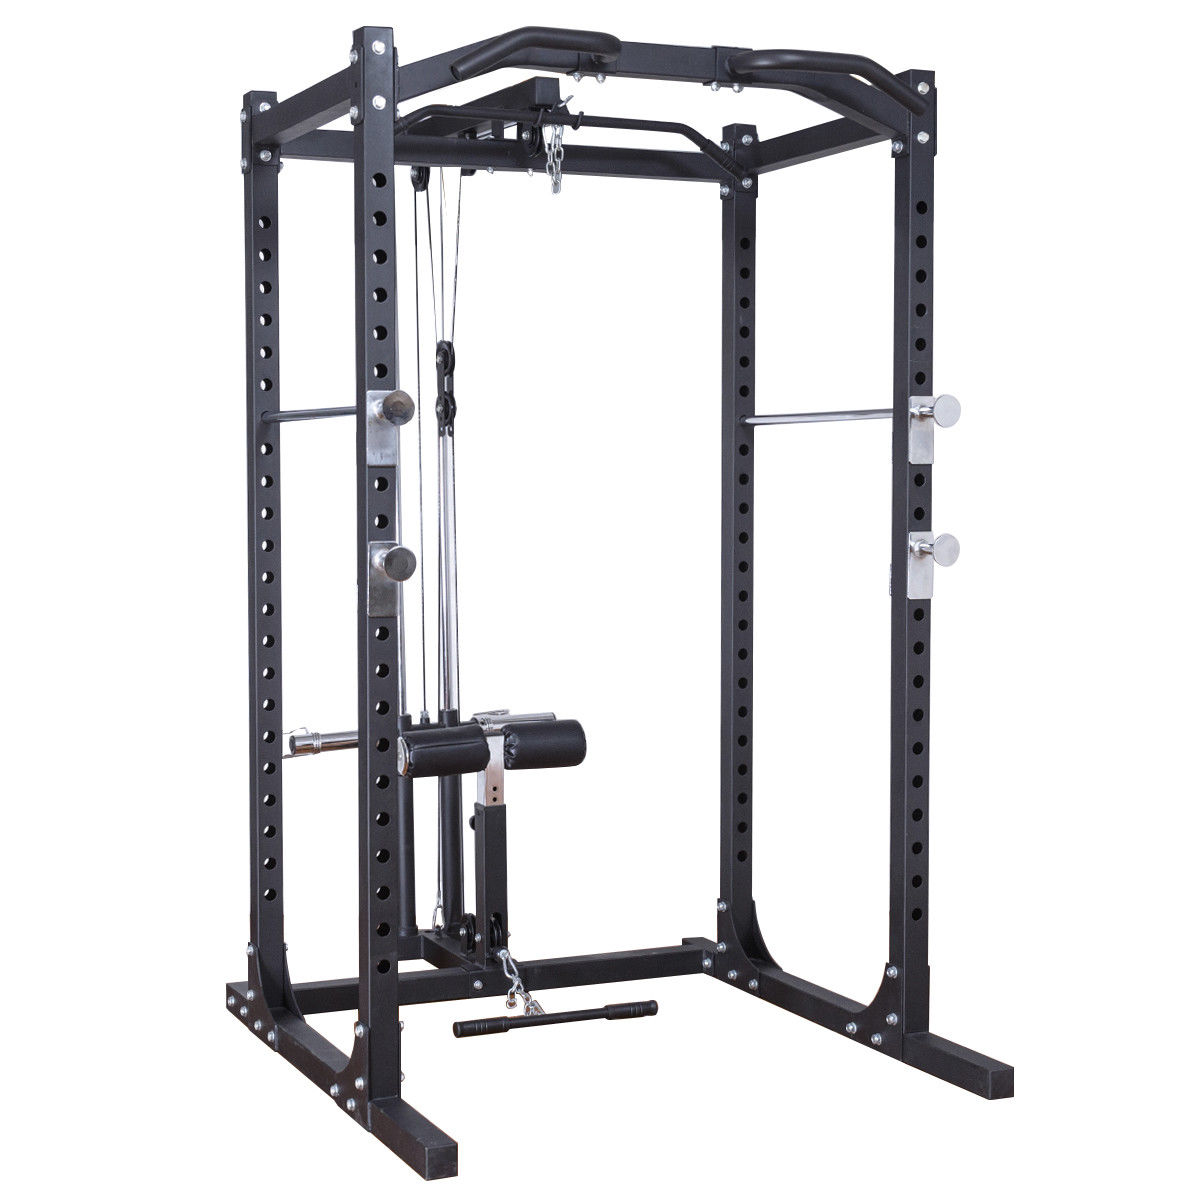 gymax fitness power rack w lat pull attachment weight holder exercise station